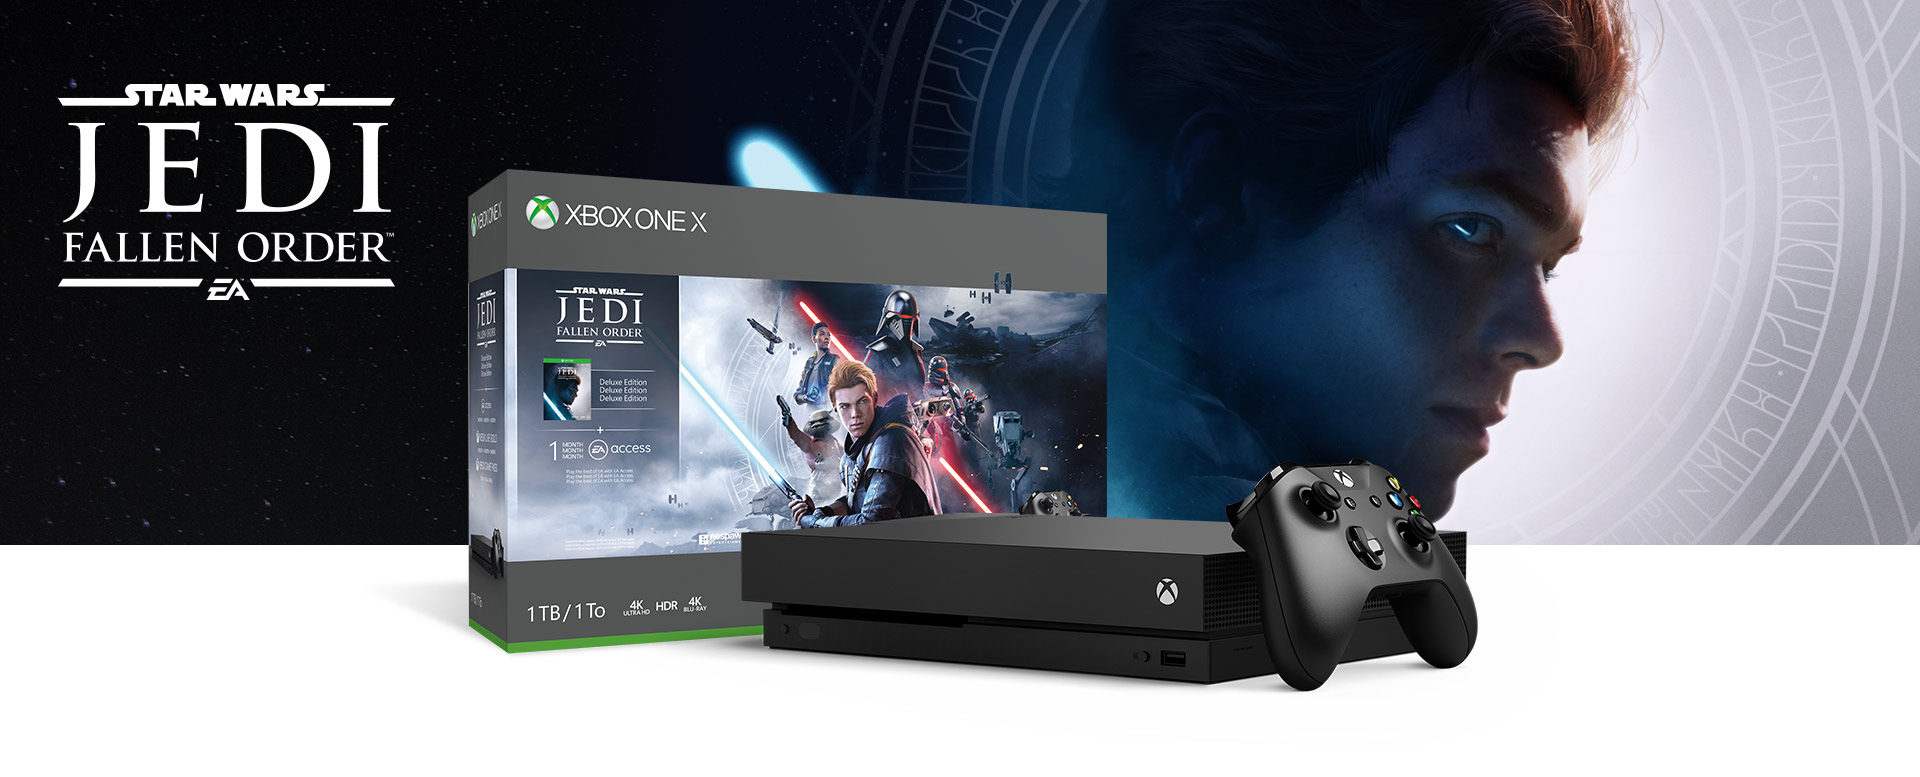 Xbox One X Konsole vor einer Hardware Bundle-Box mit Star Wars Jedi: Fallen Order Deluxe Edition